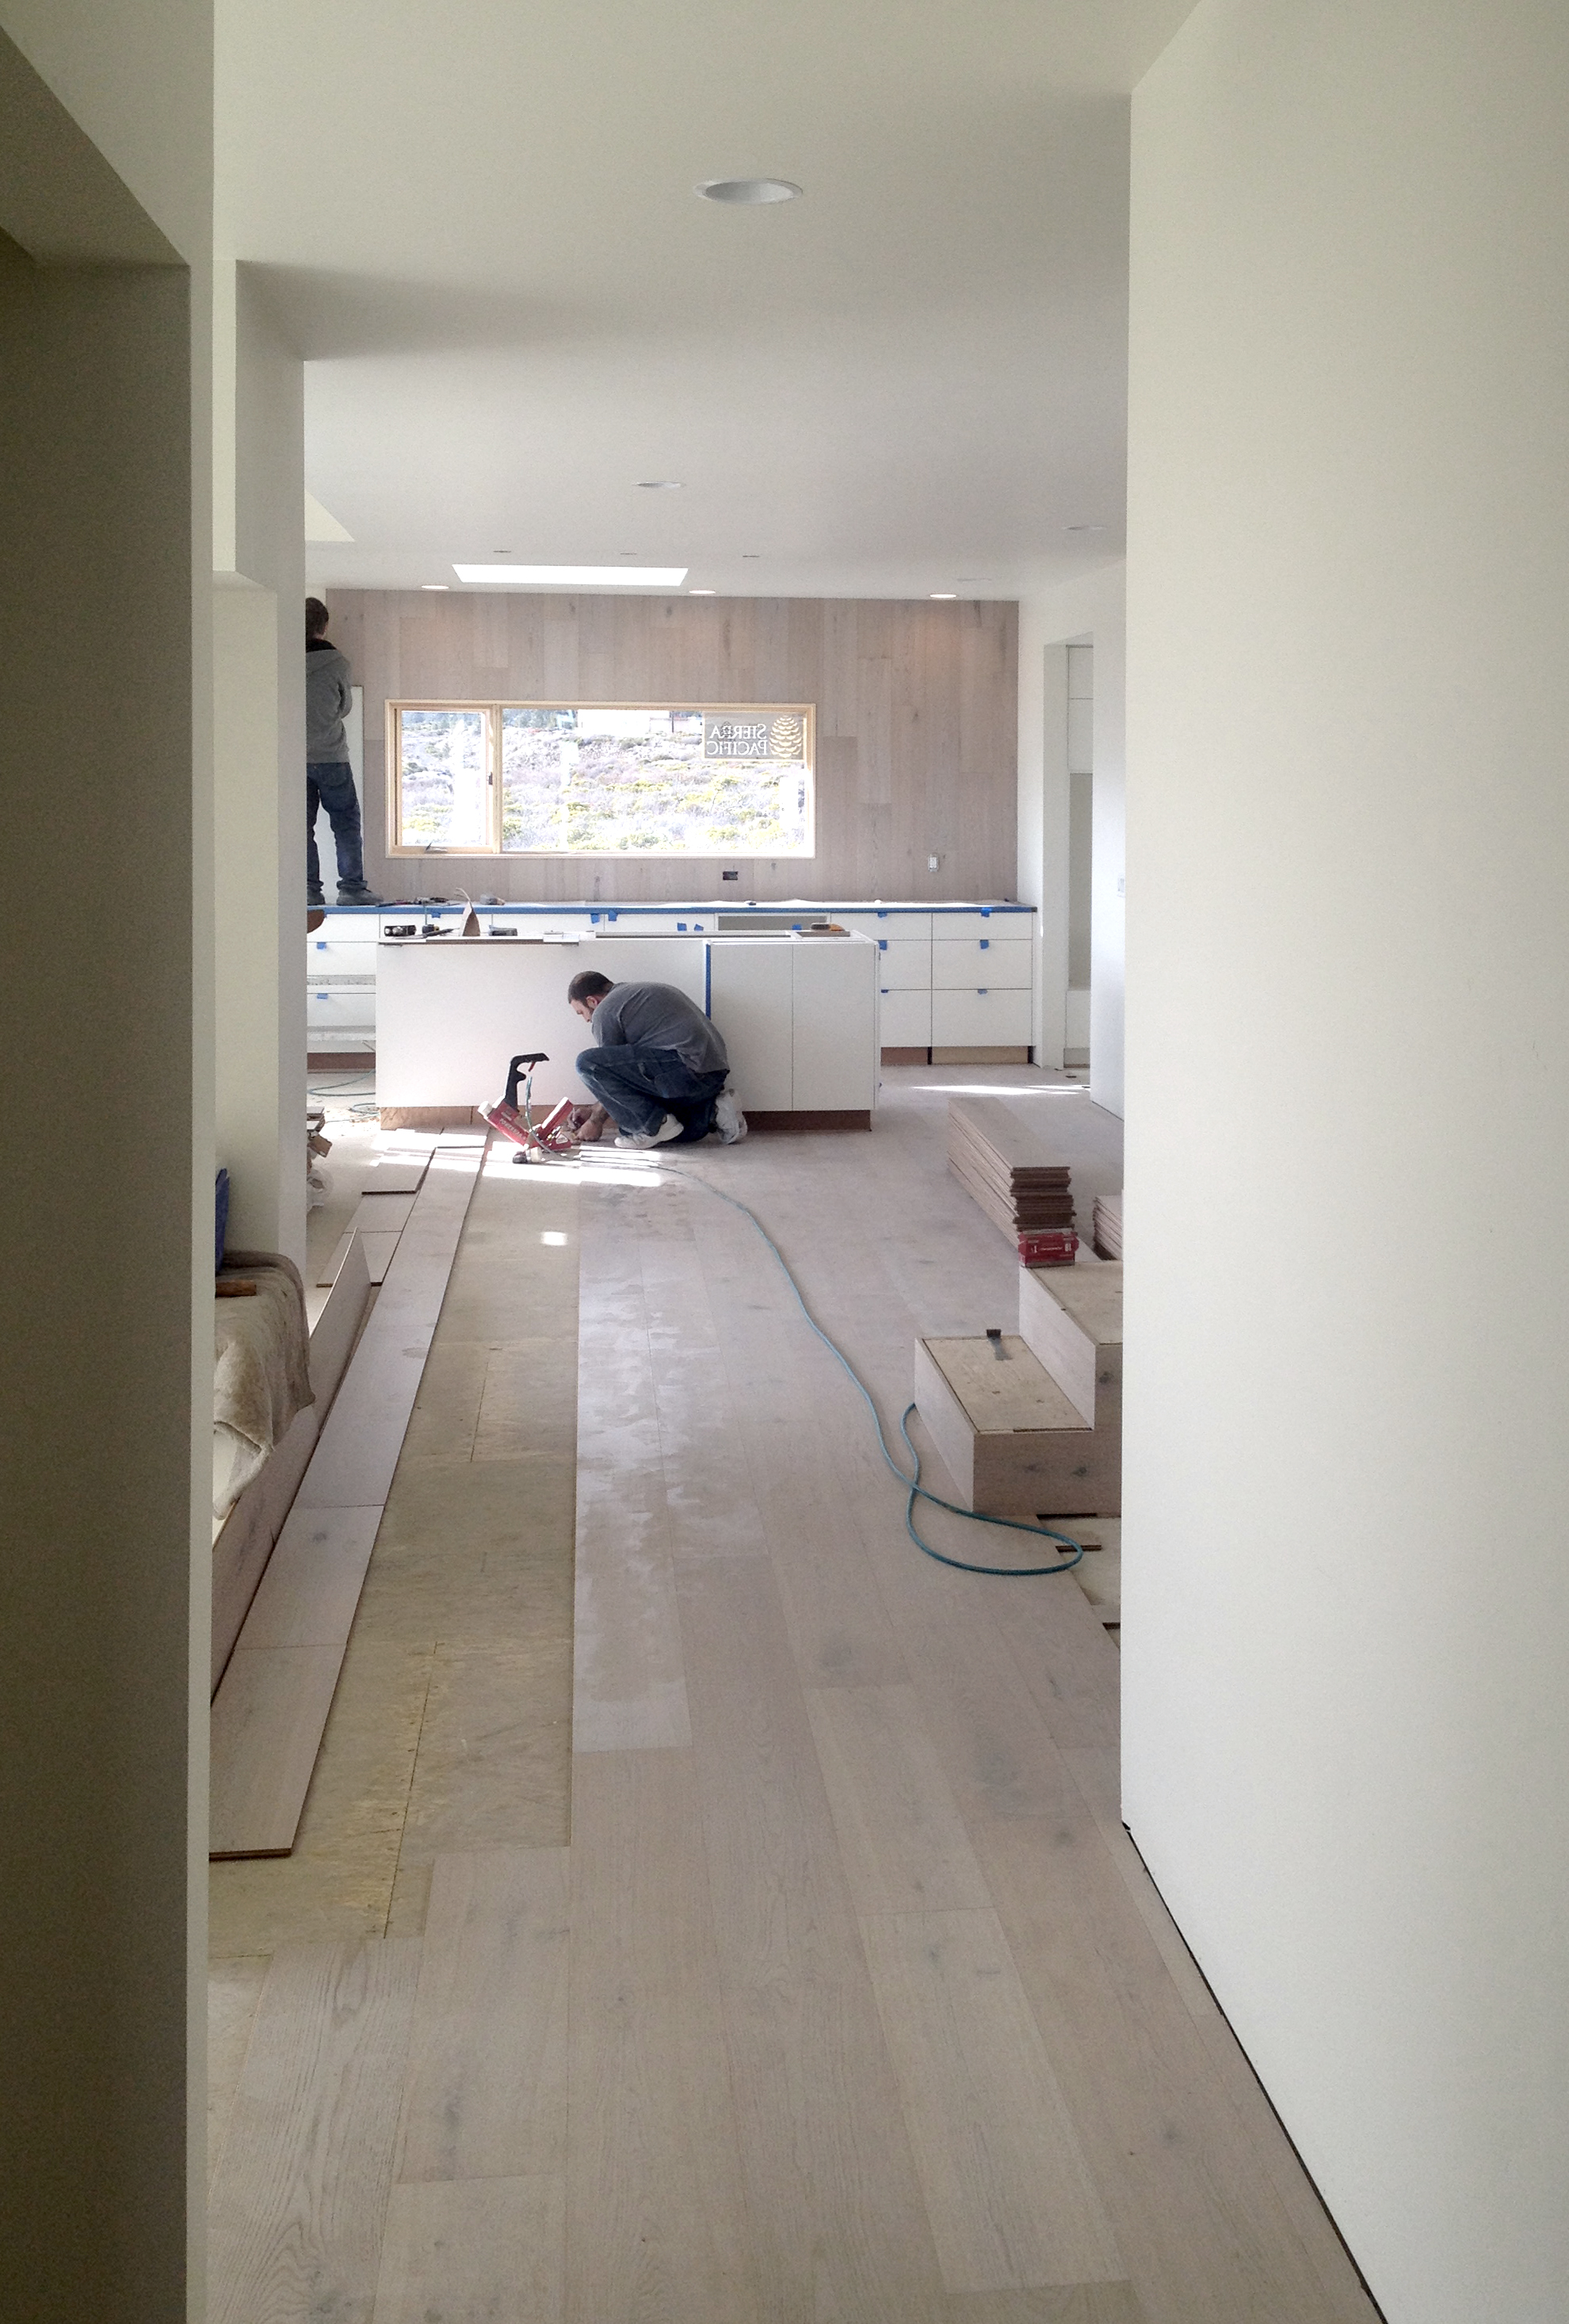 Lot 7 - Wood flooring being installed, wrapping up the wall beyond the kitchen cabinetry